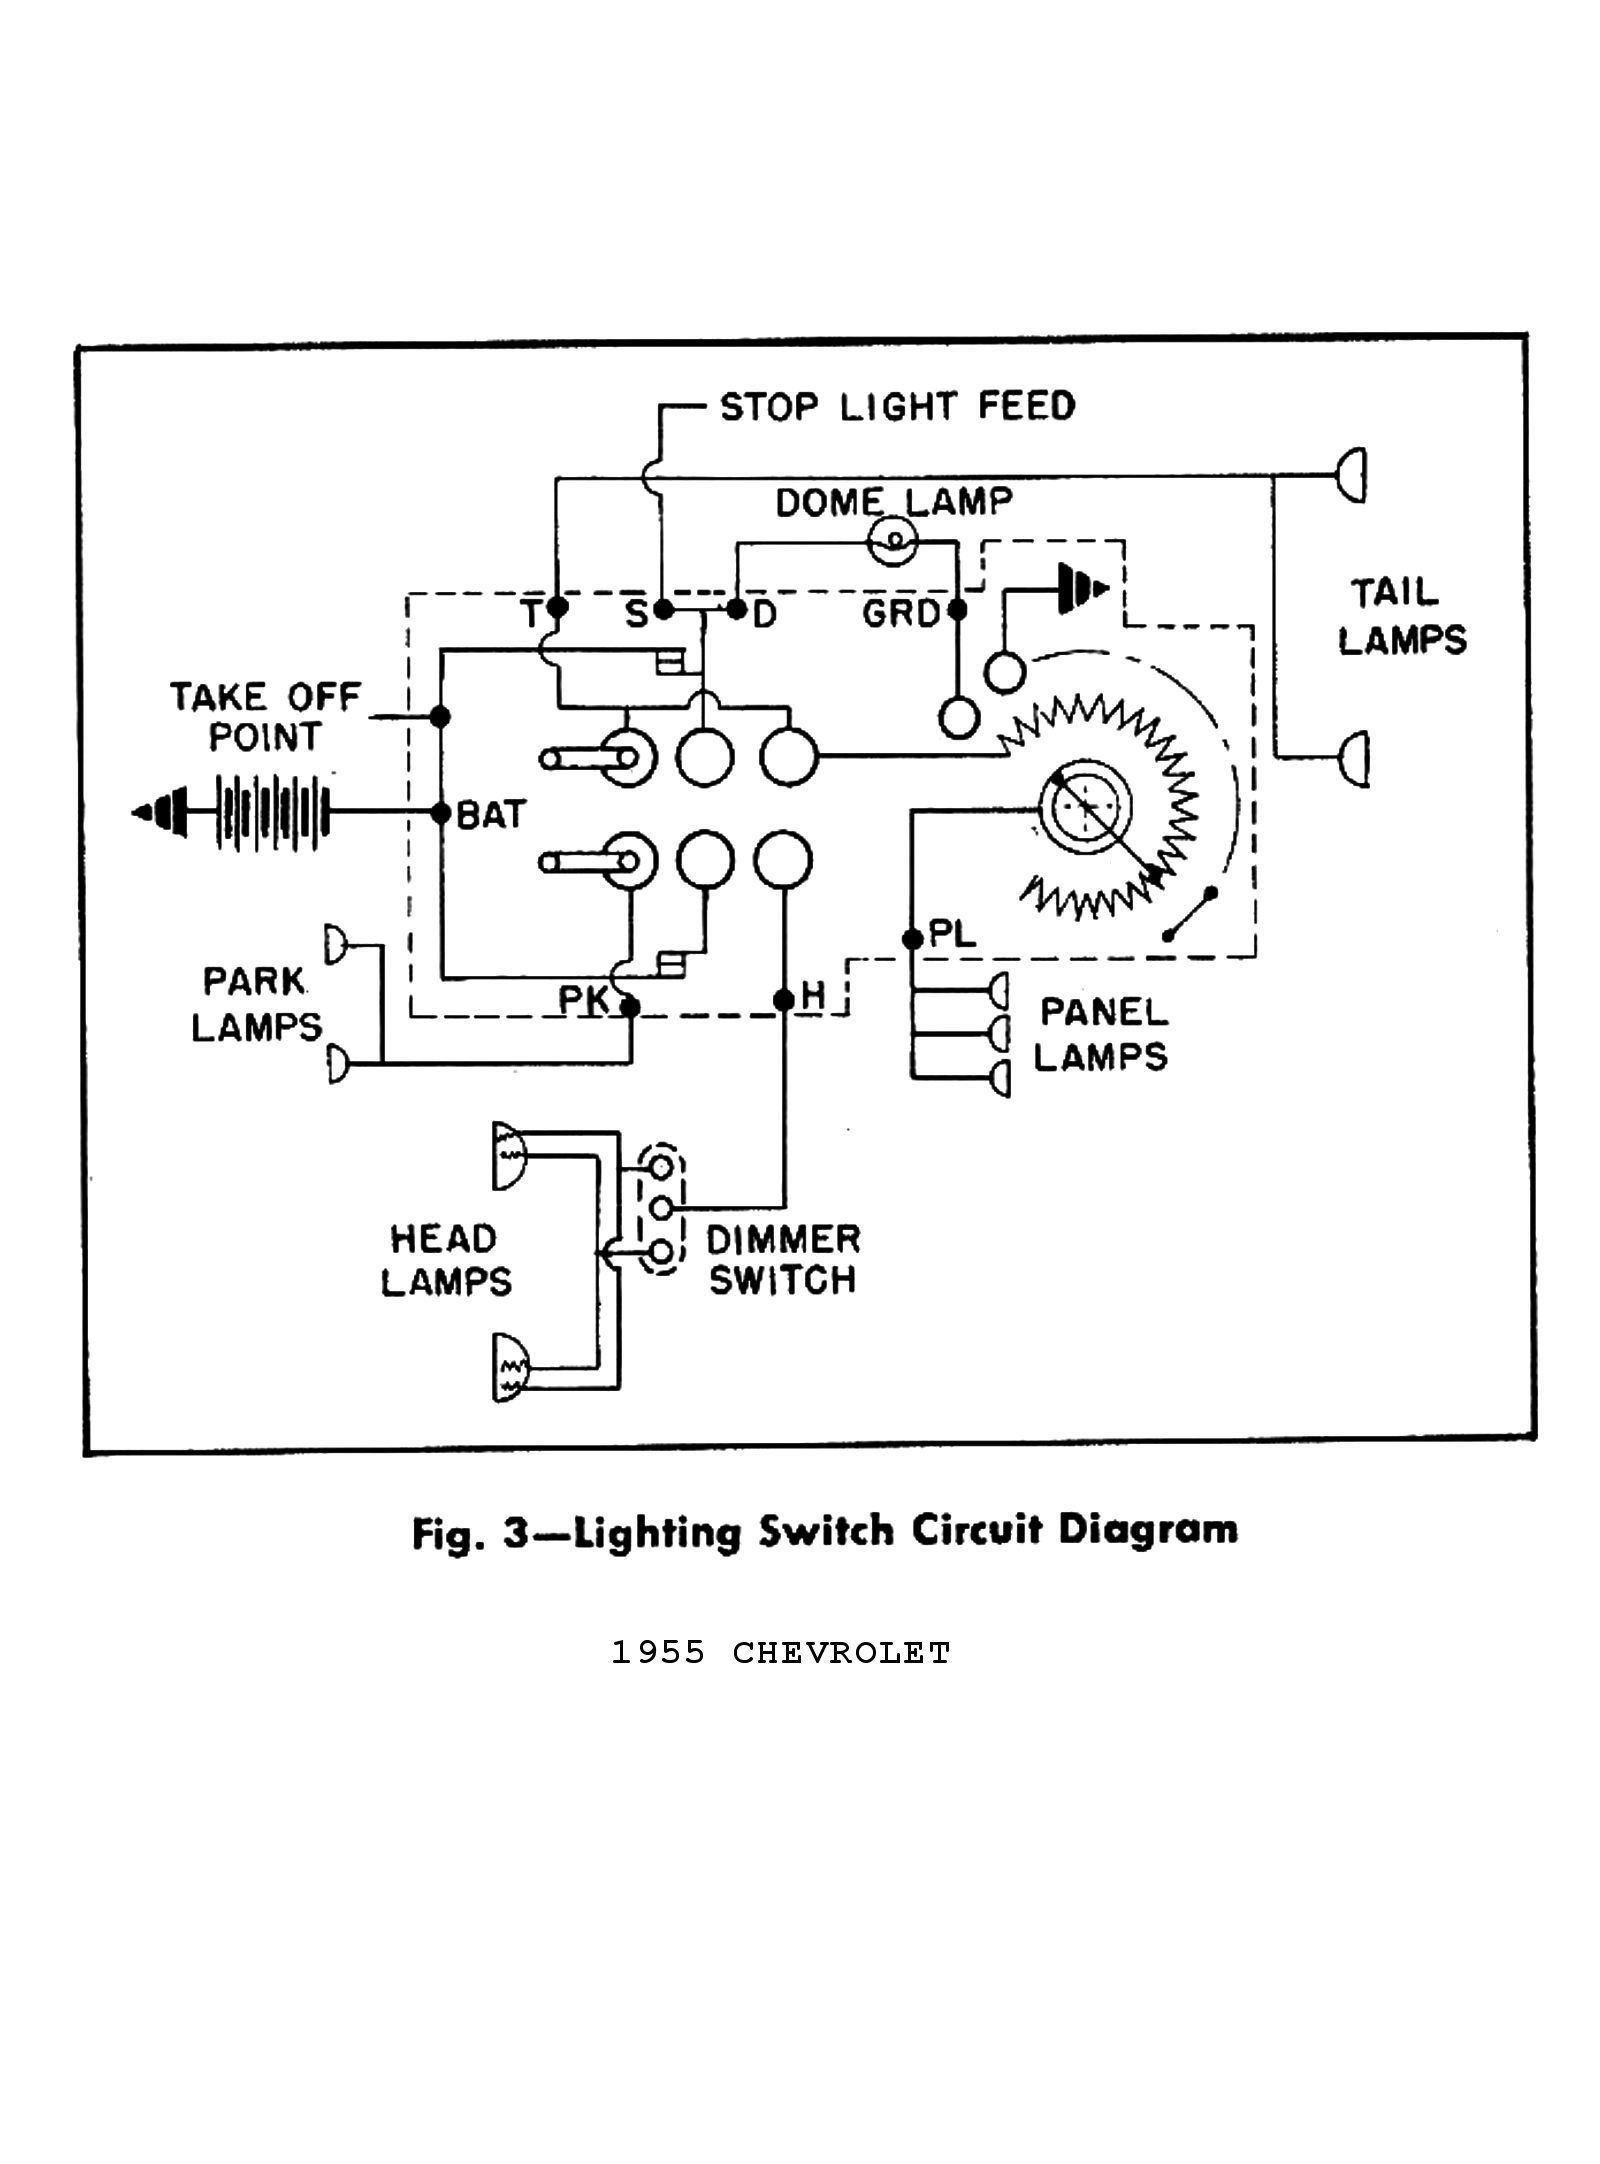 small resolution of 55 chevy ignition switch wiring diagram wiring diagram yer 1980 chevy truck ignition wiring diagram truck ignition wiring diagram